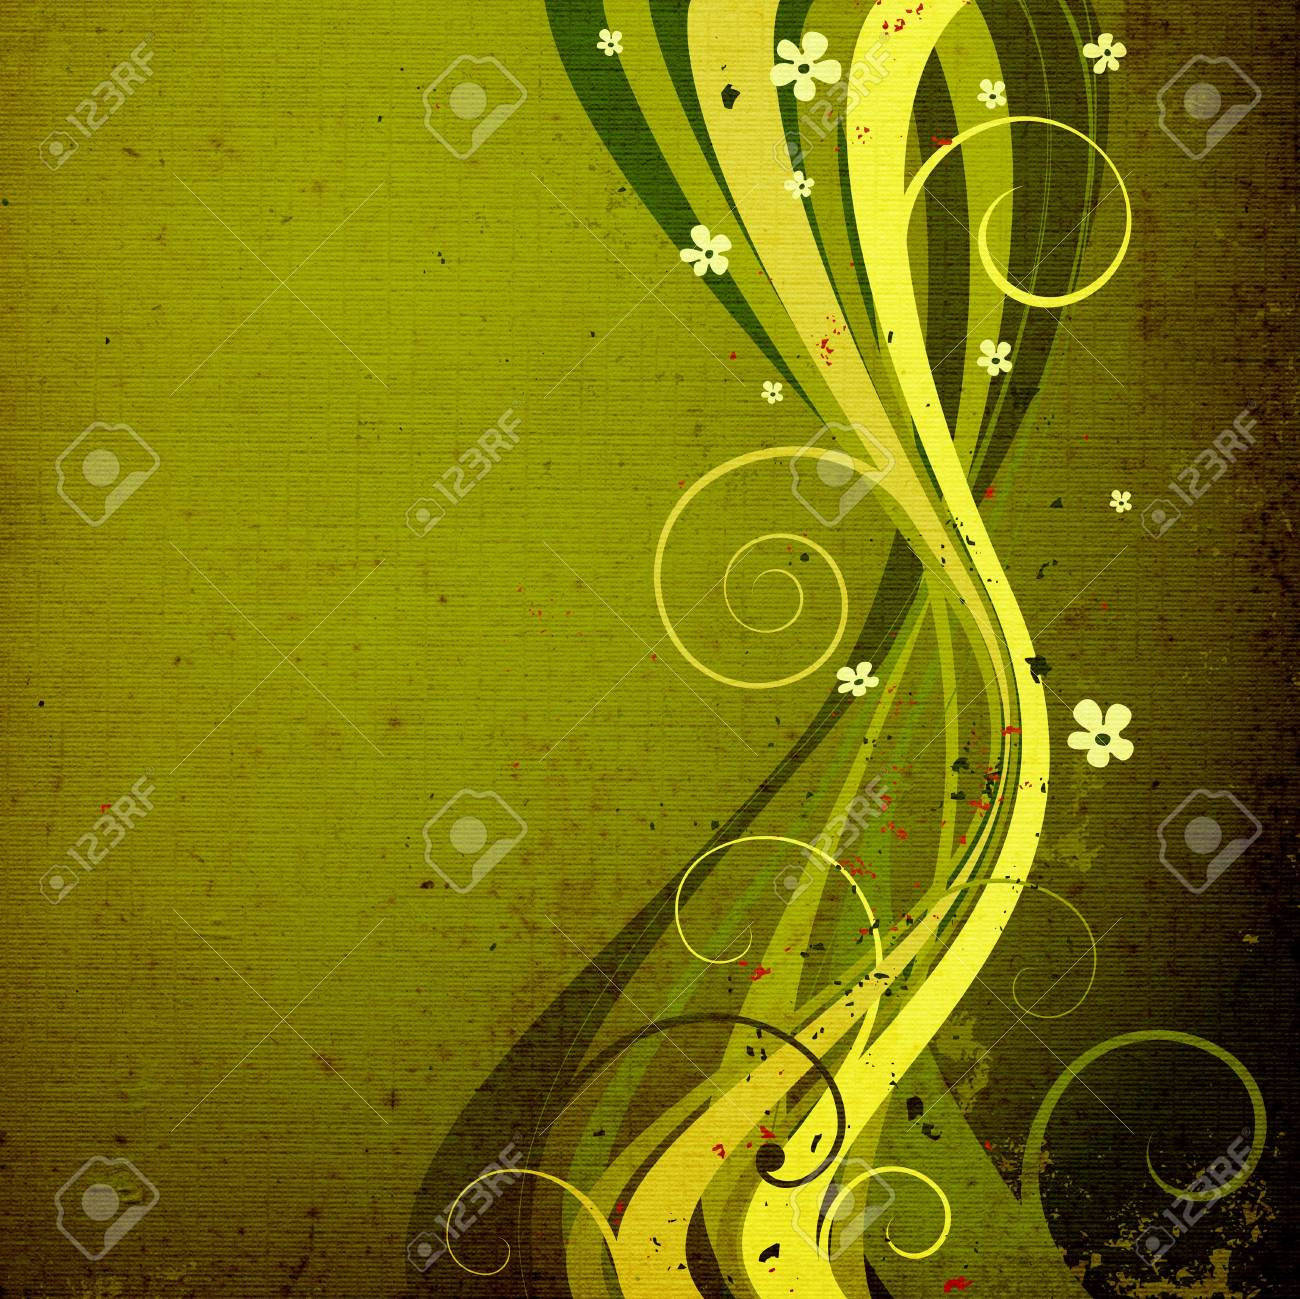 abstract decorative composition with foliage, floral design Stock Photo - 1141087